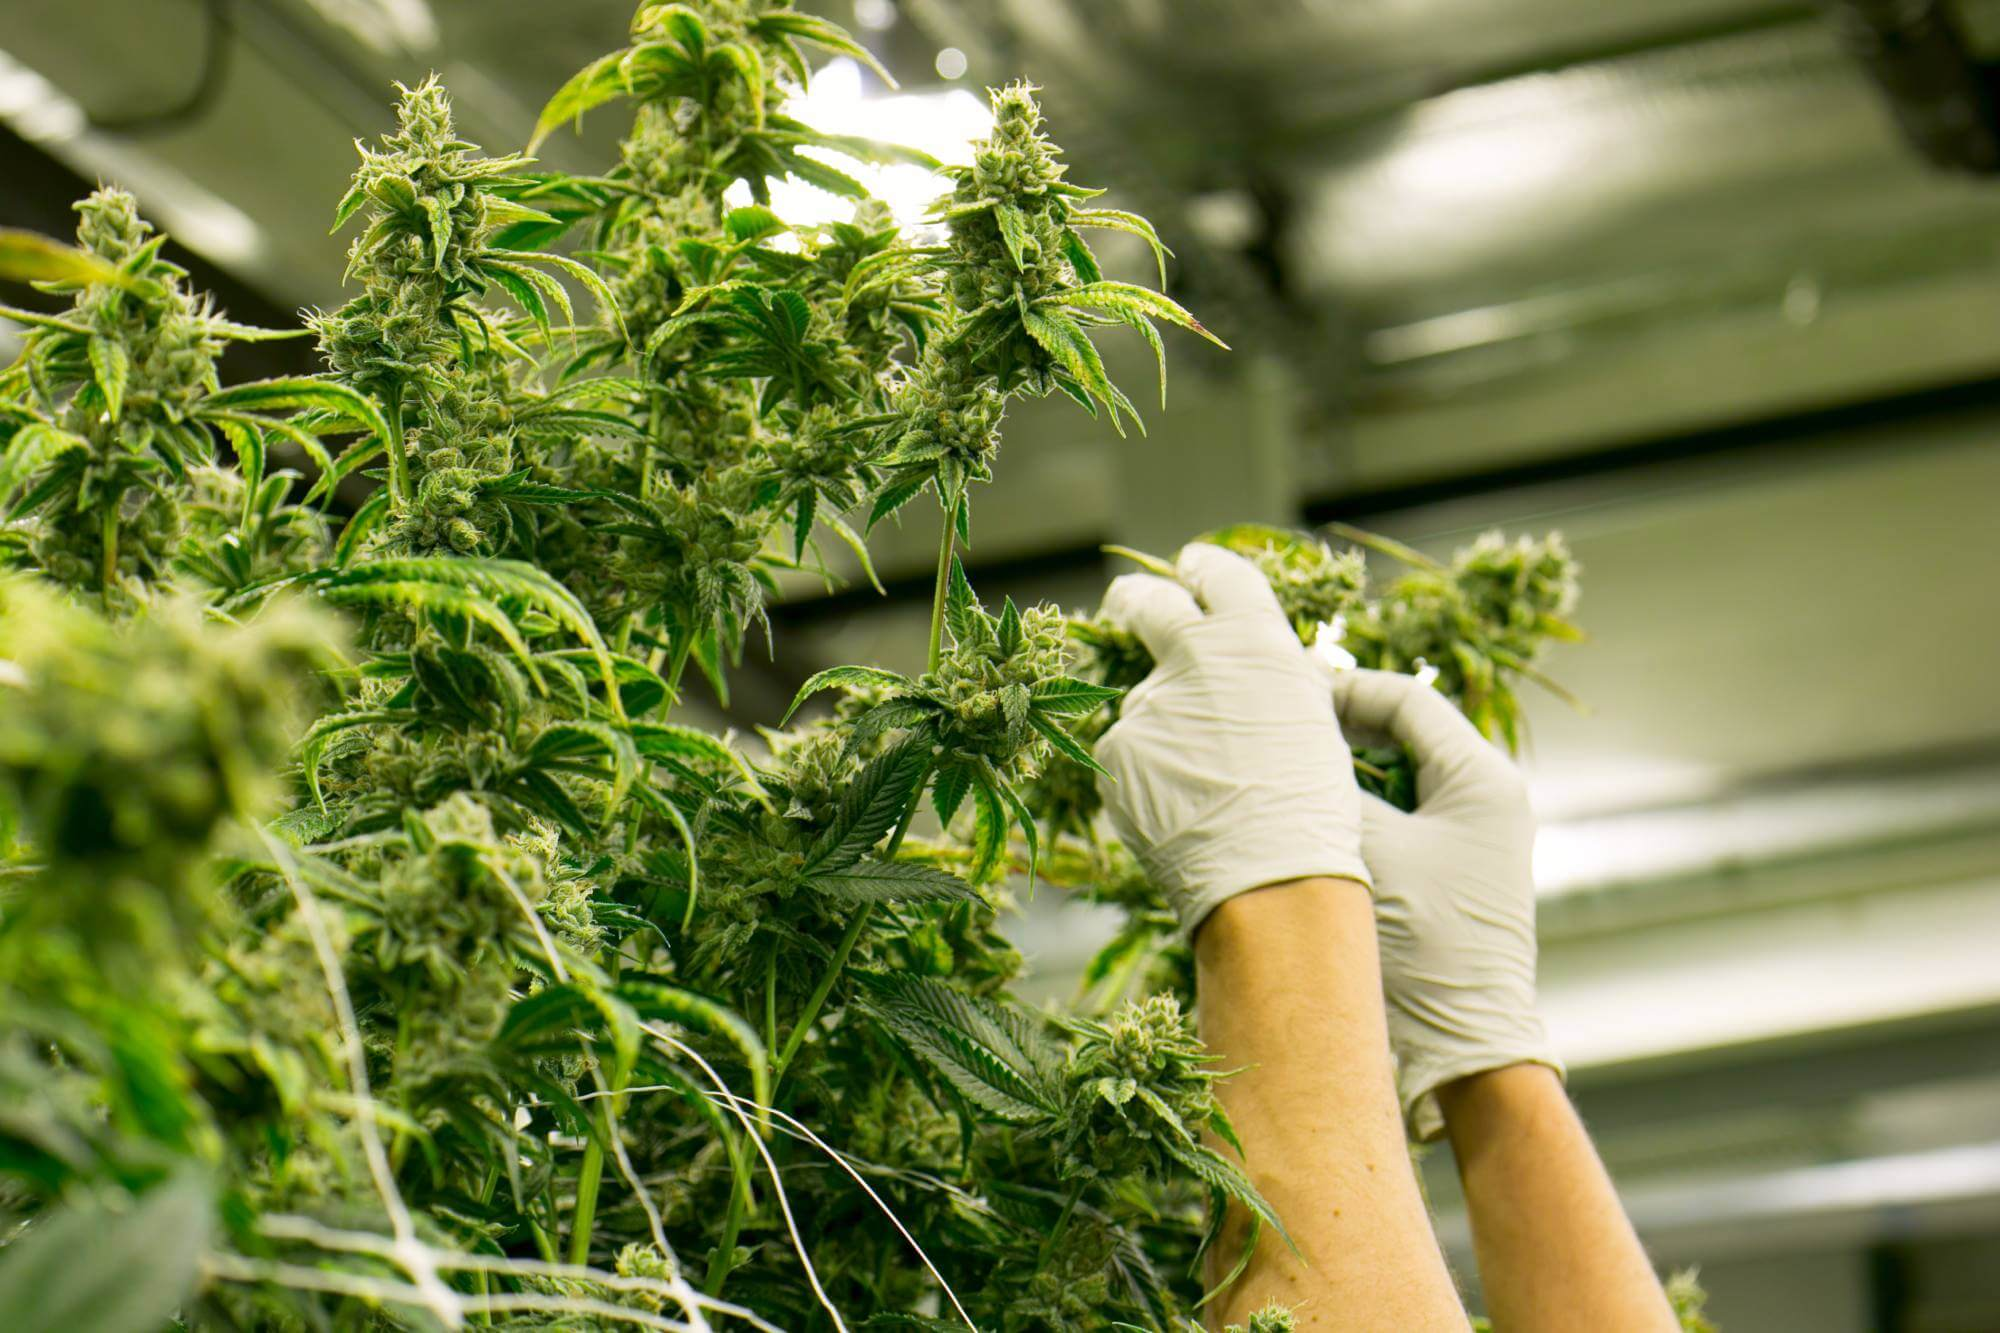 hands with gloves harvest cannabis plant